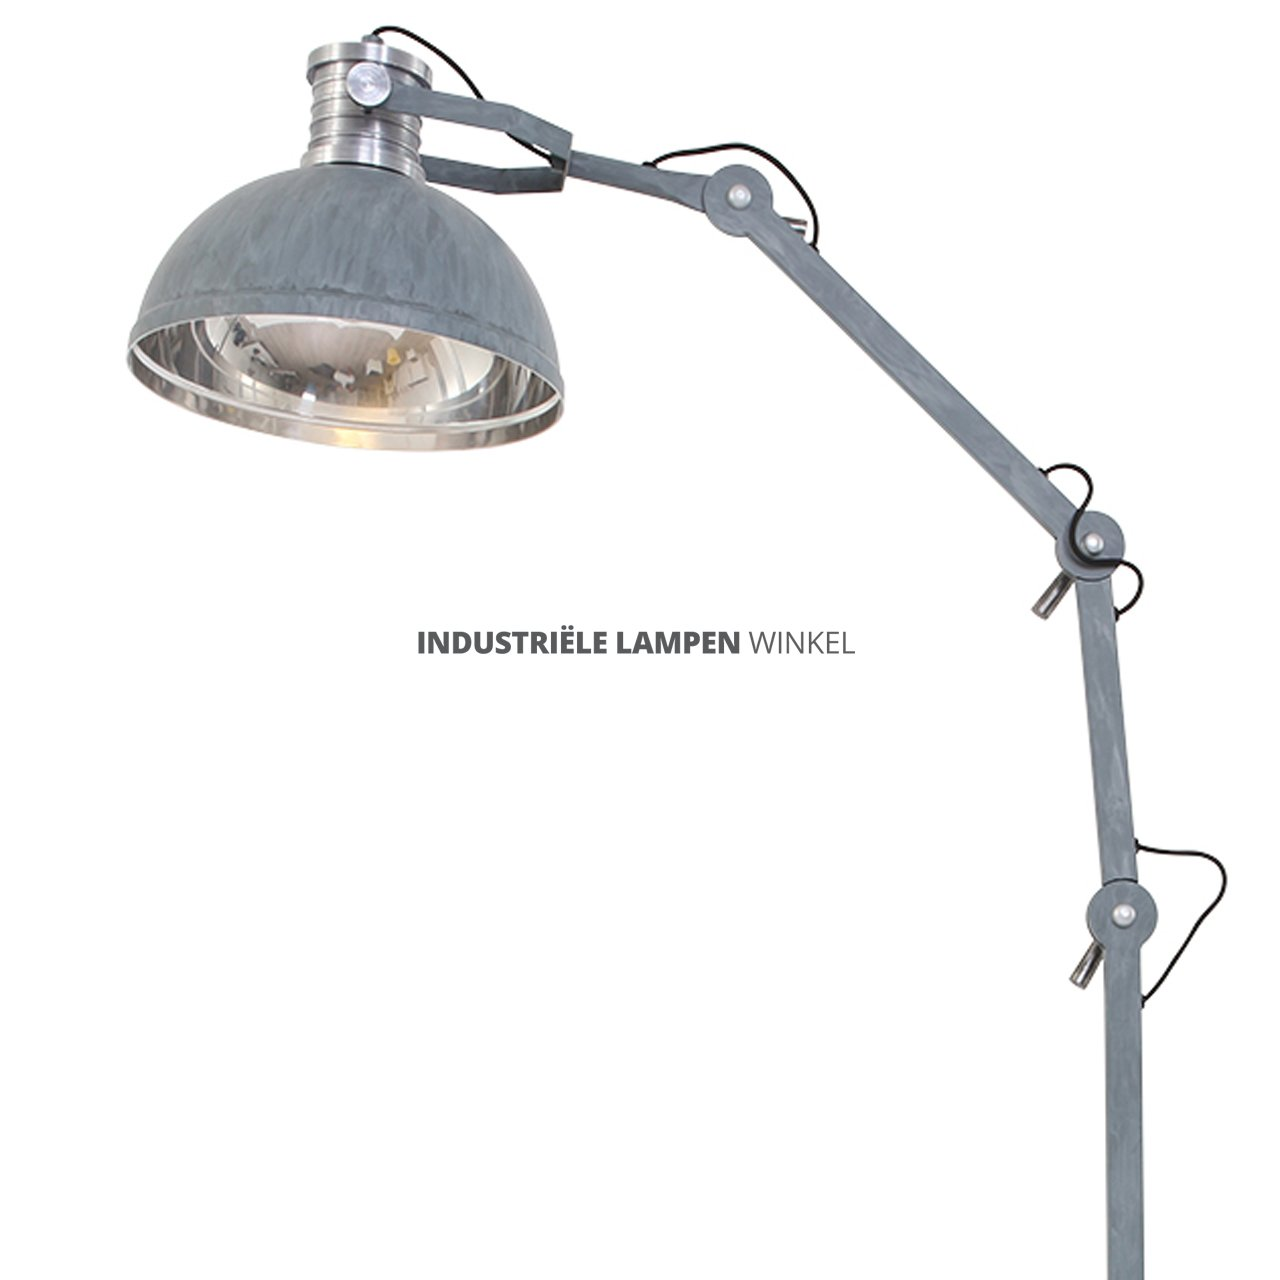 Plafondlamp industrieel latest industrile plafondlamp for Staande lamp betonlook